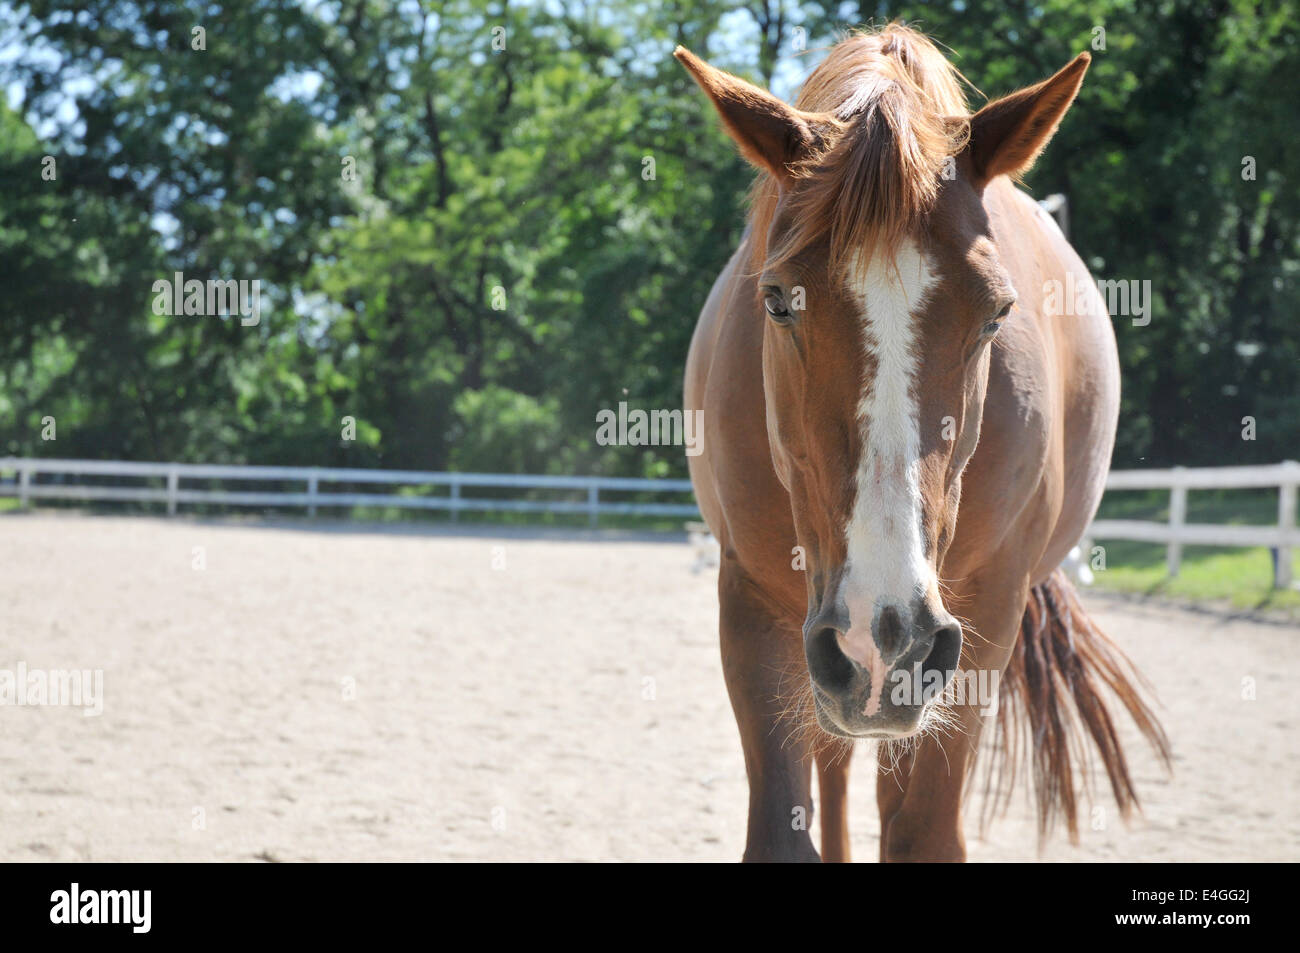 Pony at Belmont Stables in Philadelphia, Pa, USA. - Stock Image